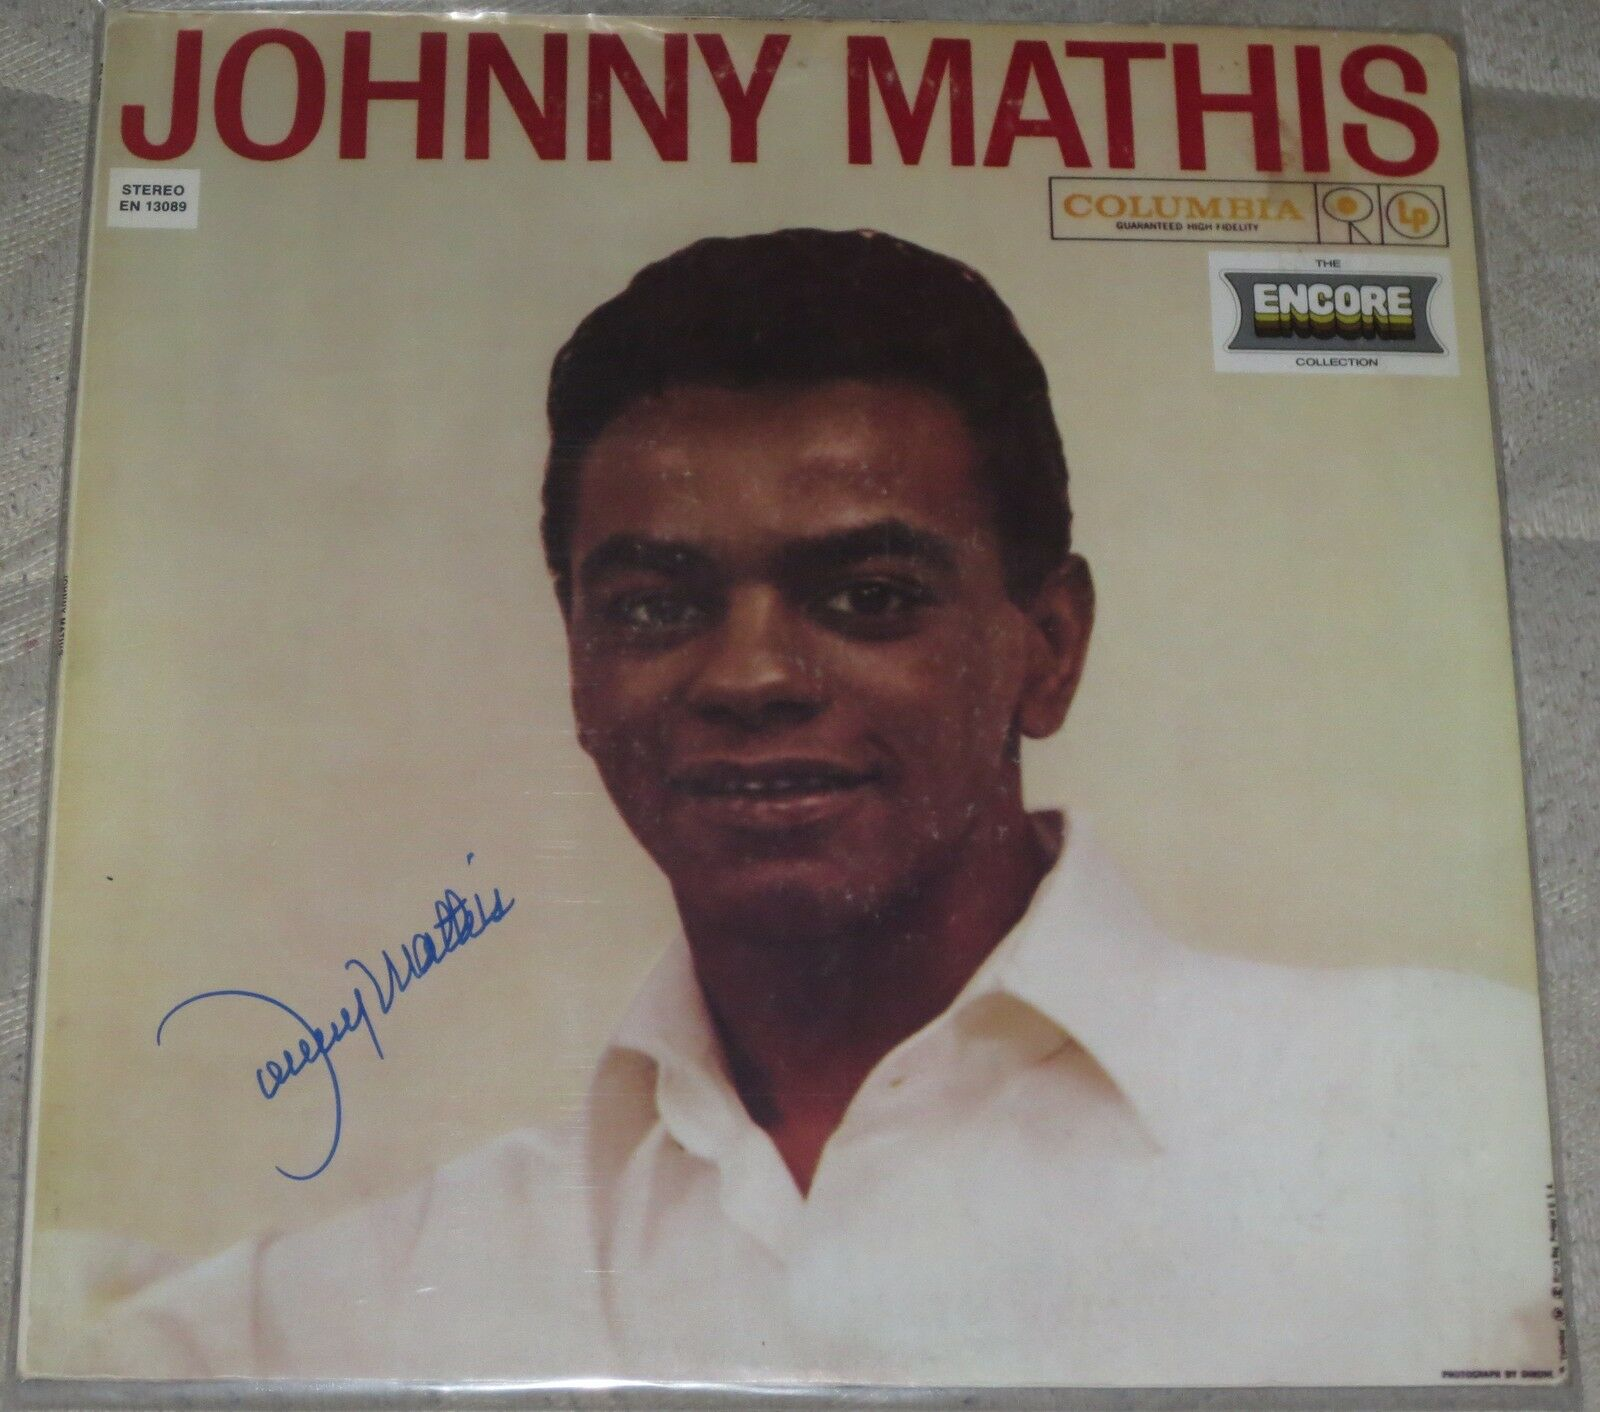 Johnny mathis legendary performer signed album in person for West mathi best item